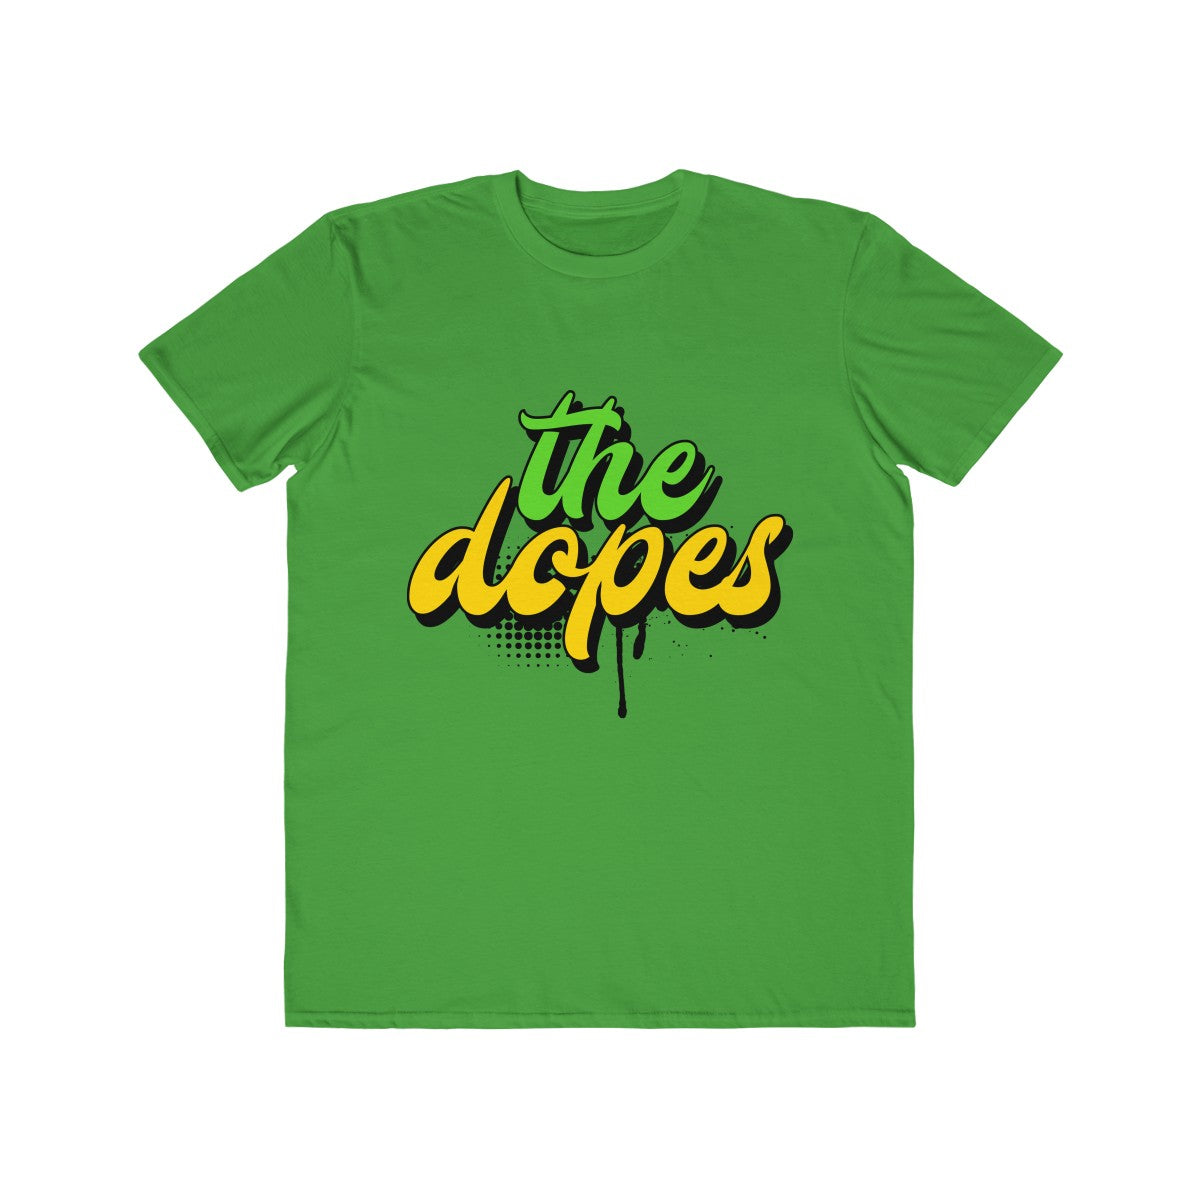 Men's Lightweight Dopes Tee